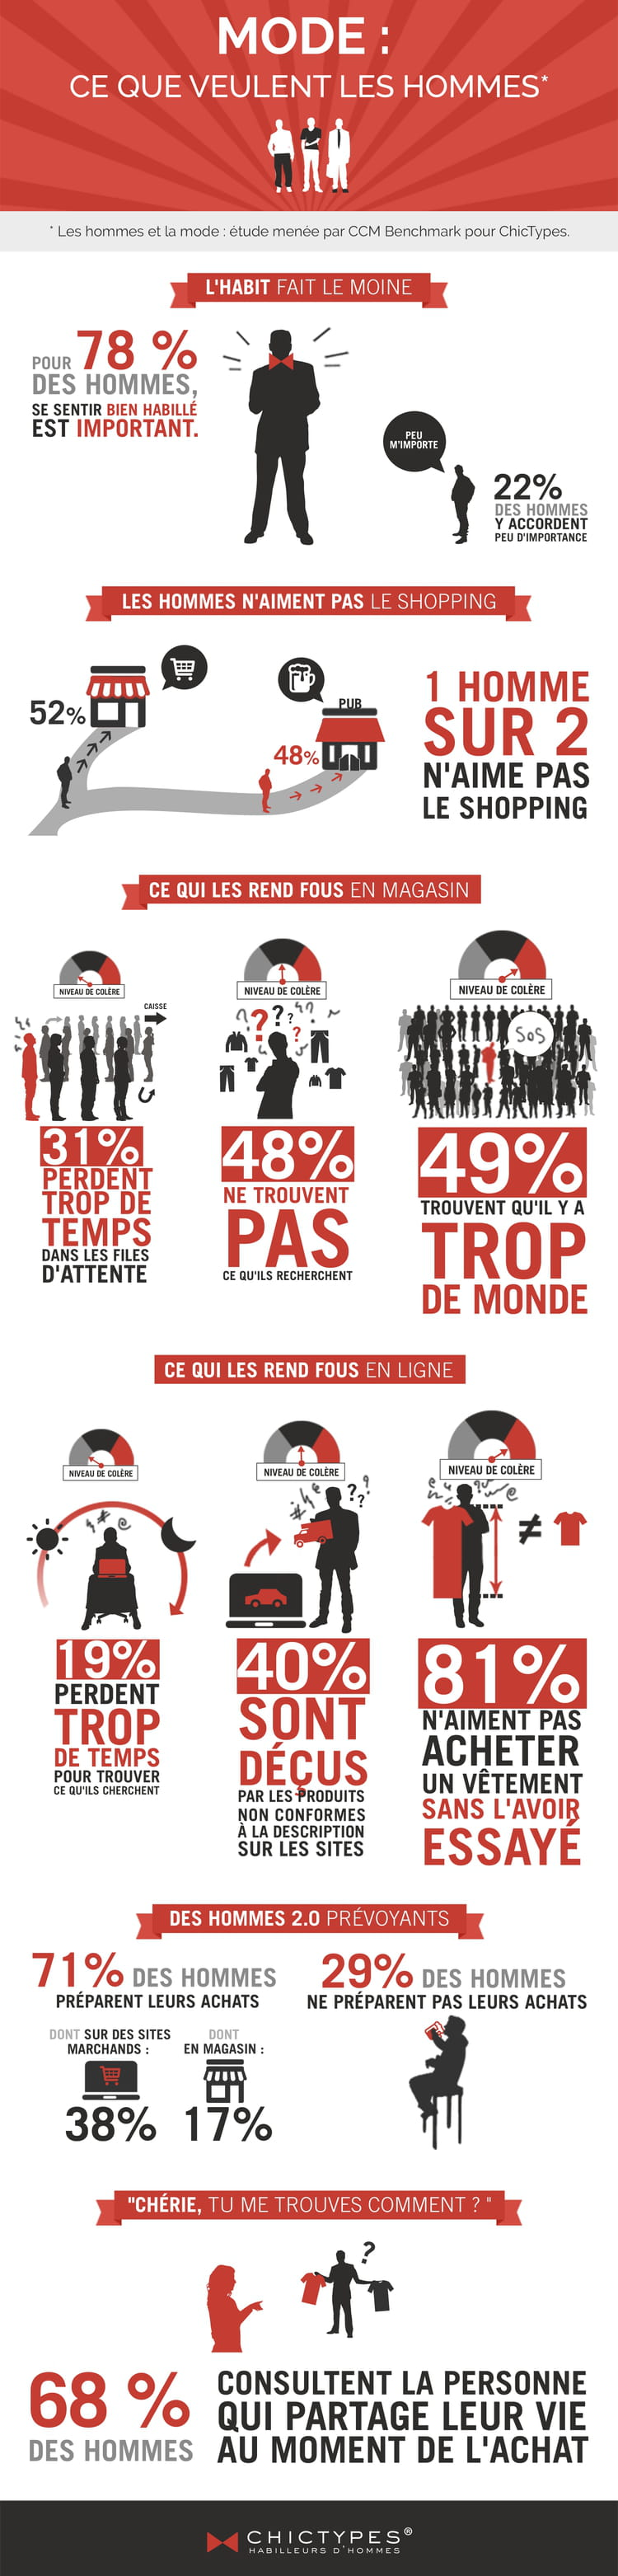 infographie chictypes